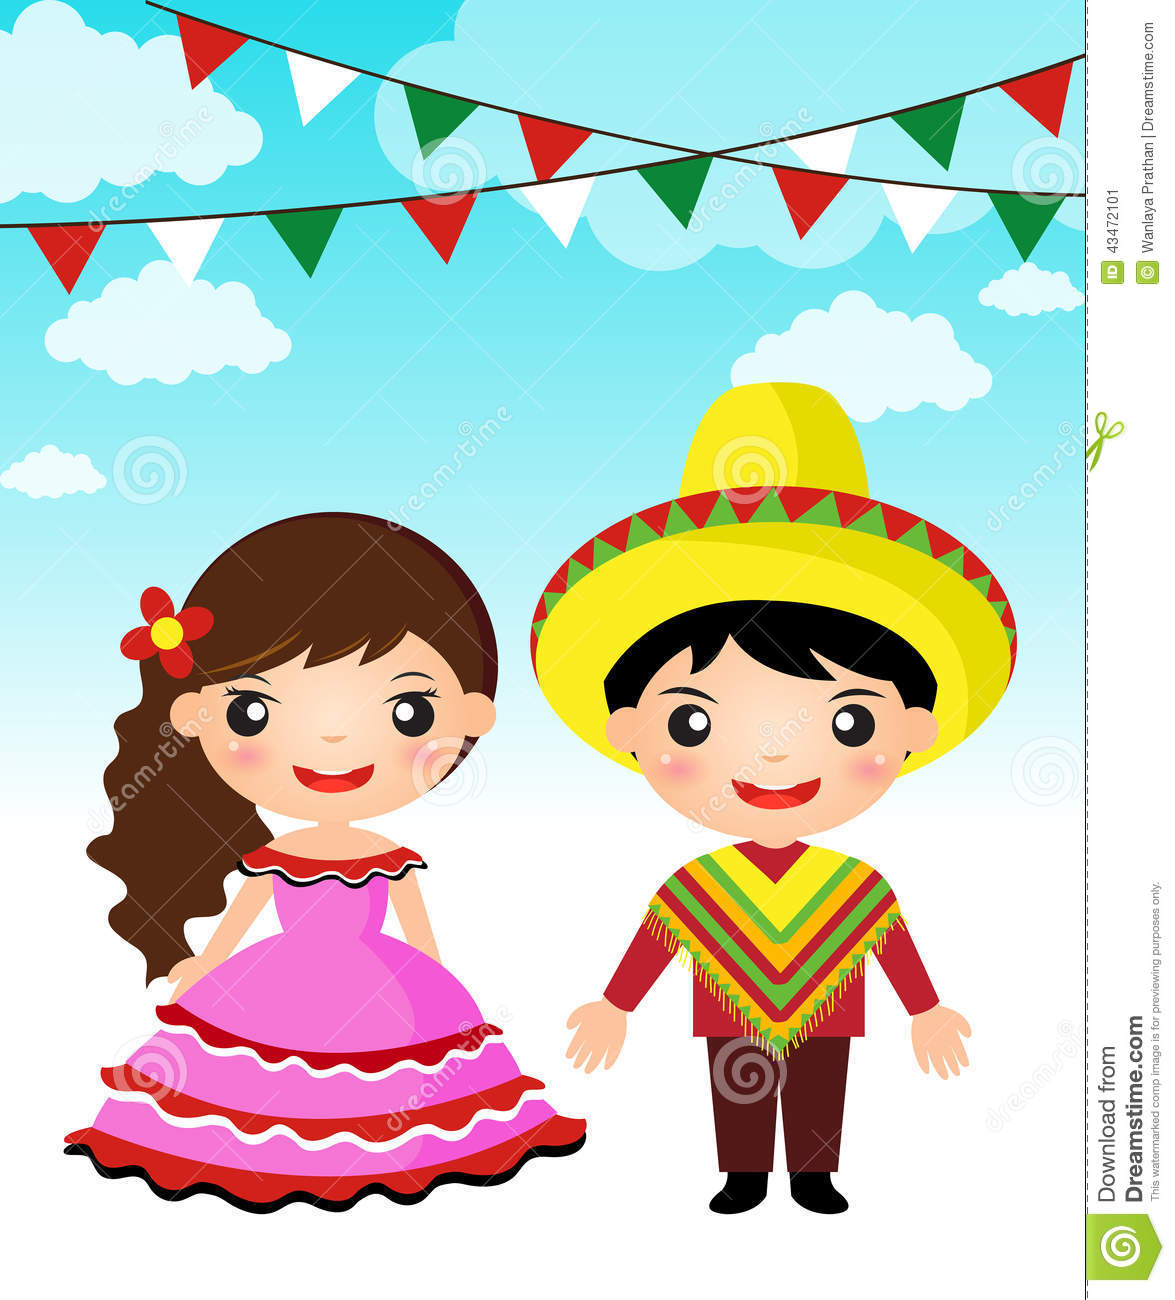 Mexican traditional dress clipart svg freeuse Mexican traditional dress clipart - ClipartFest svg freeuse